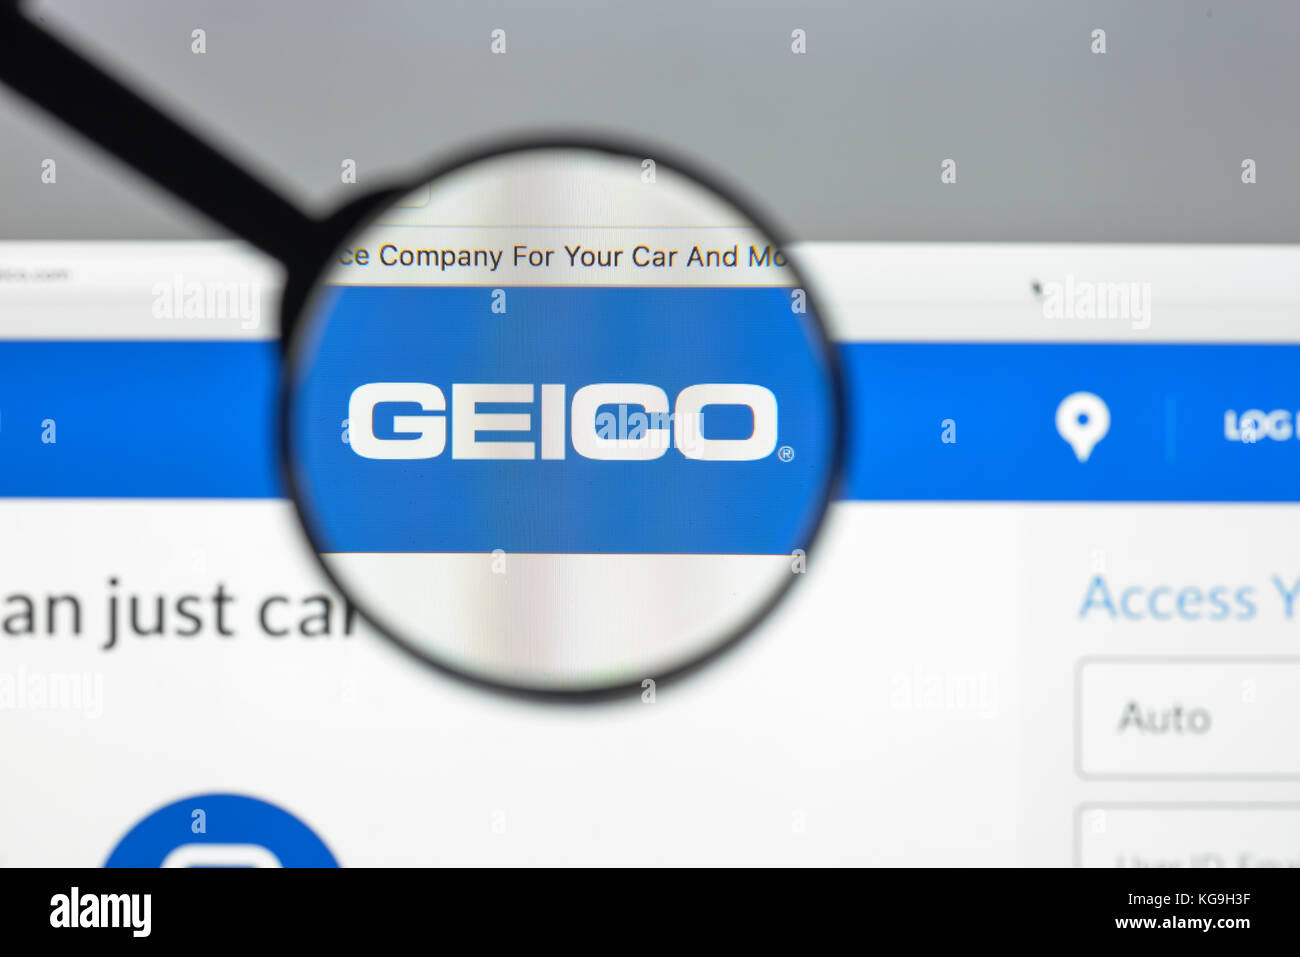 geico company Contact geico insurance at (800) 861-8380 for all your insurance needs we also have specific phone numbers for individual insurance products and services.